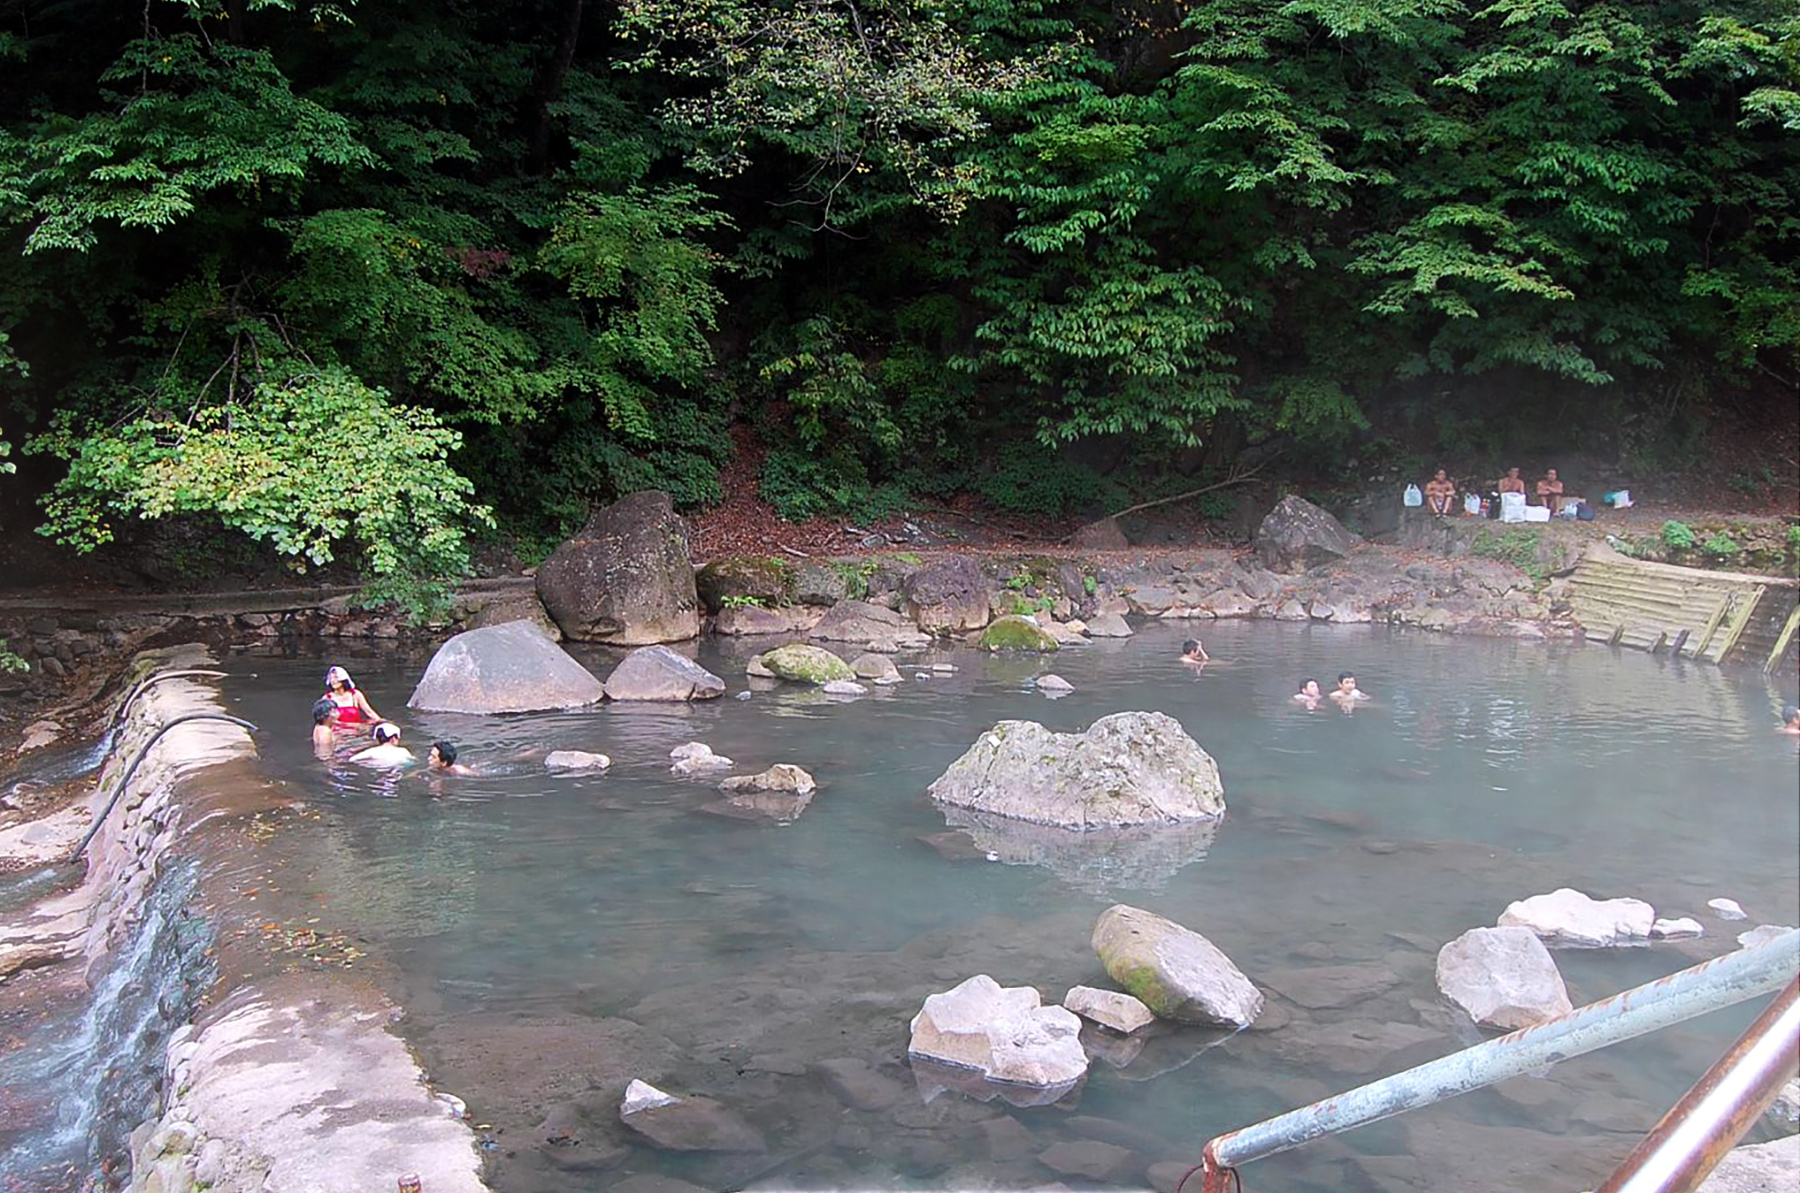 7 Onsen In Kanto Where Men And Women Can Bathe Together - Gaijinpot-2008